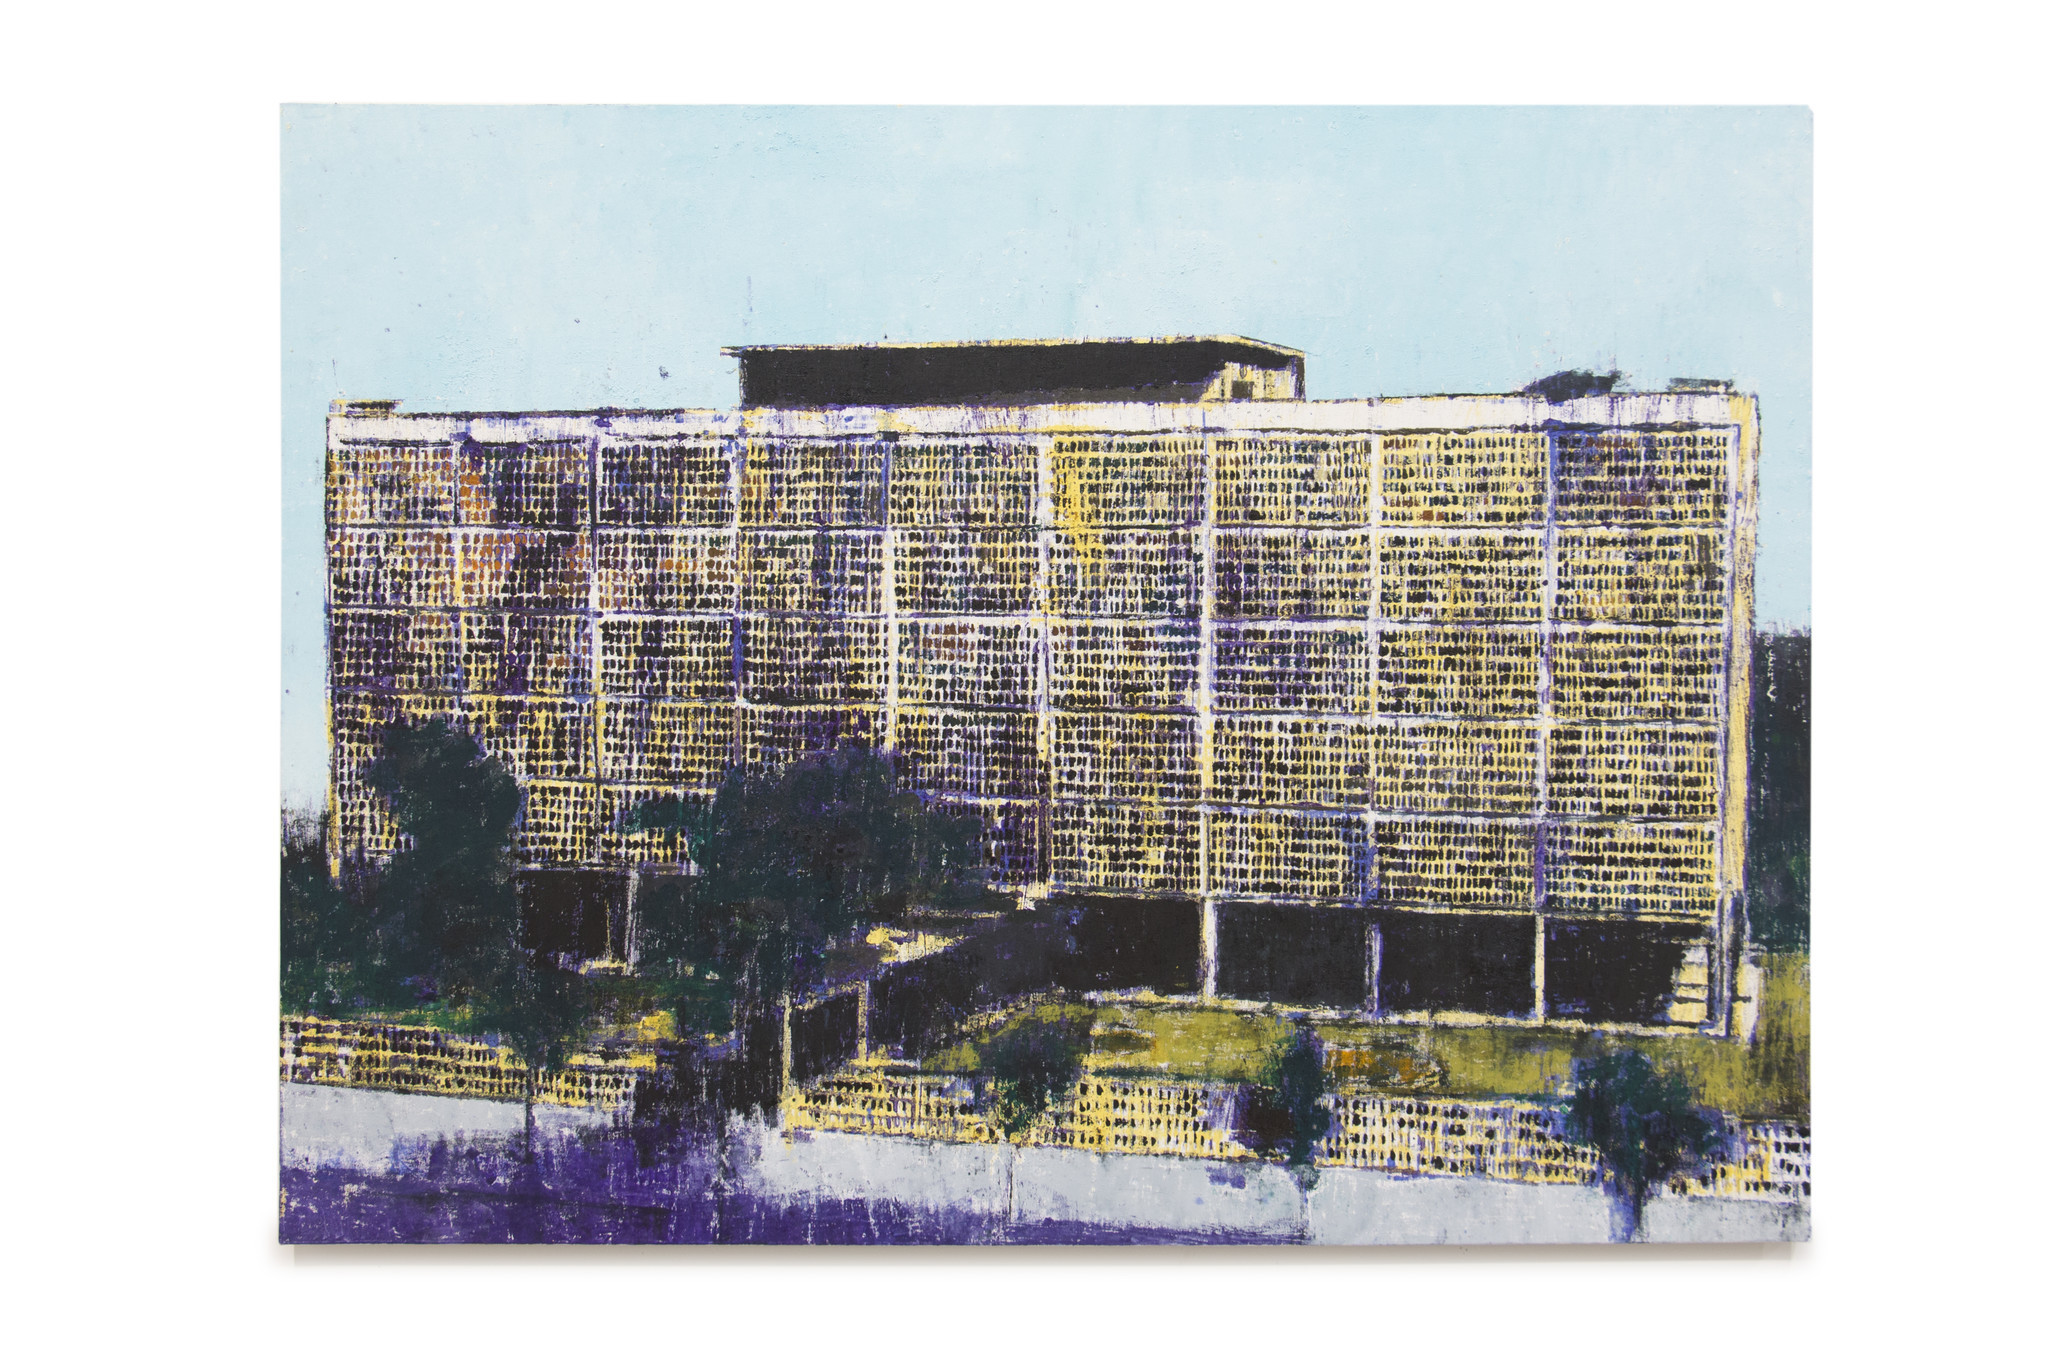 """""""US Embassy Saigon,"""" 2017, by Enoc Perez, on view at UTA Artist Space in Boyle Heights."""